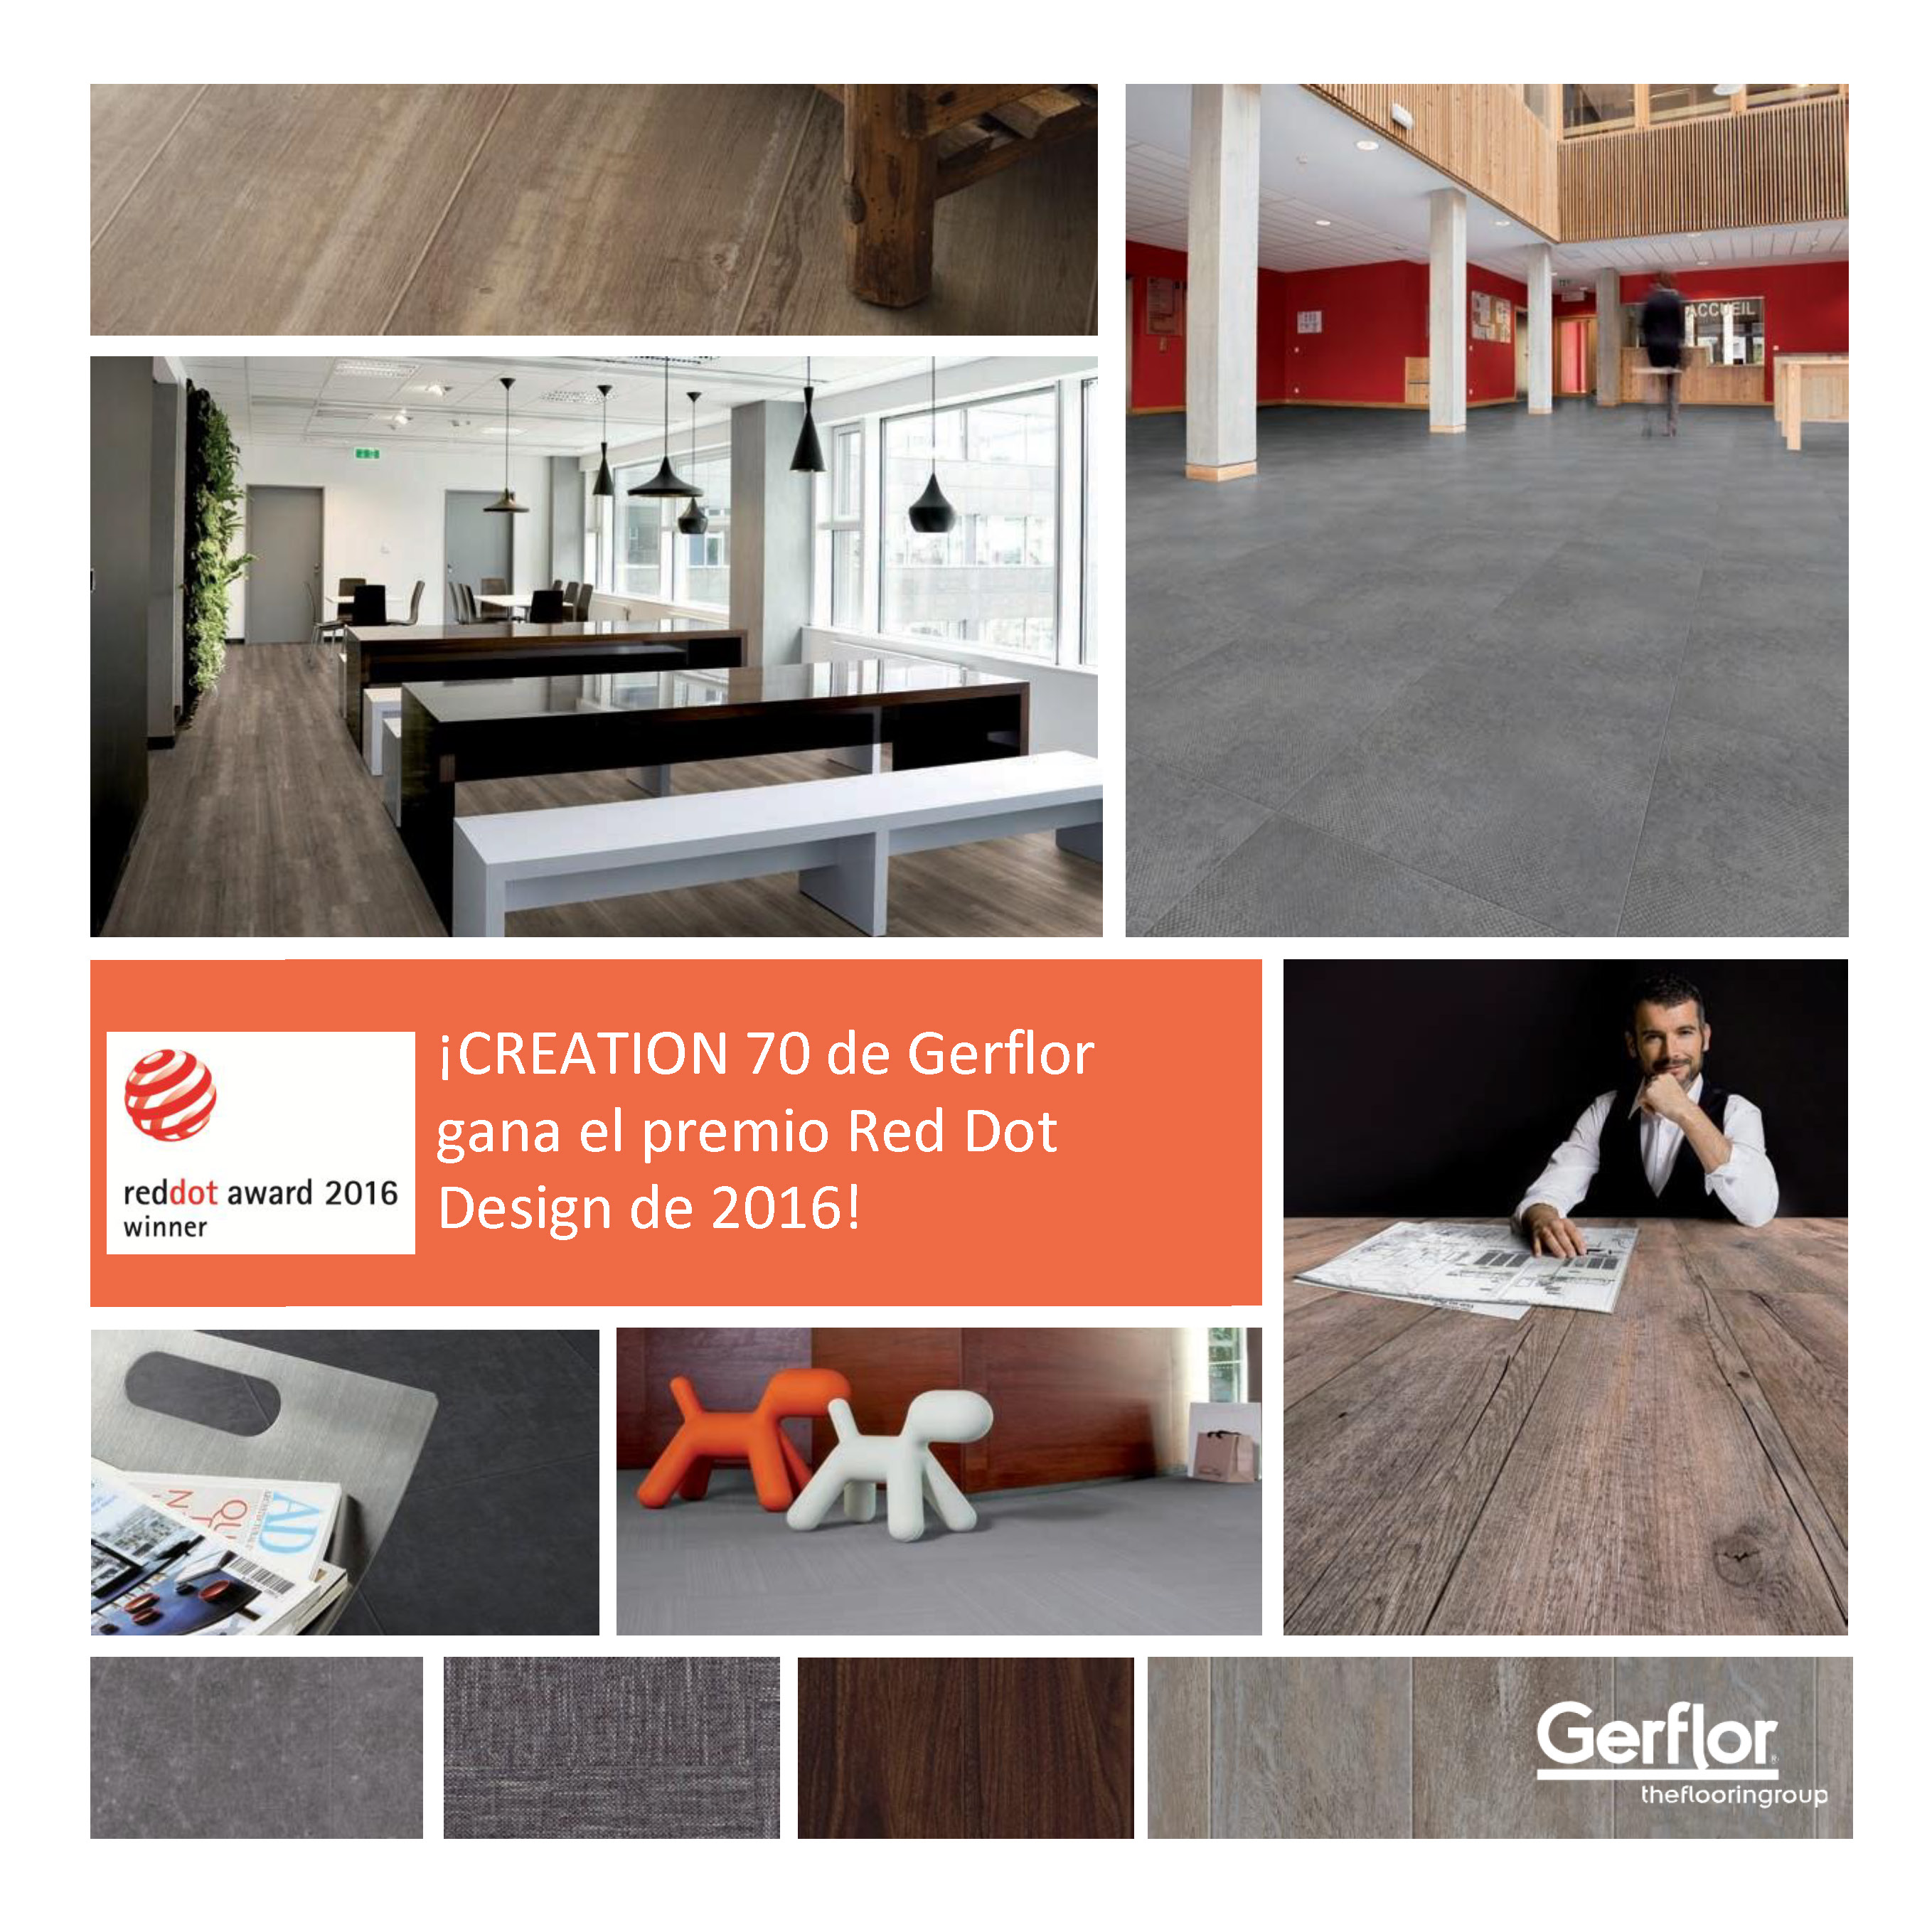 creation 70 de gerflor gana el premio red dot design de 2016 conarquitectura. Black Bedroom Furniture Sets. Home Design Ideas